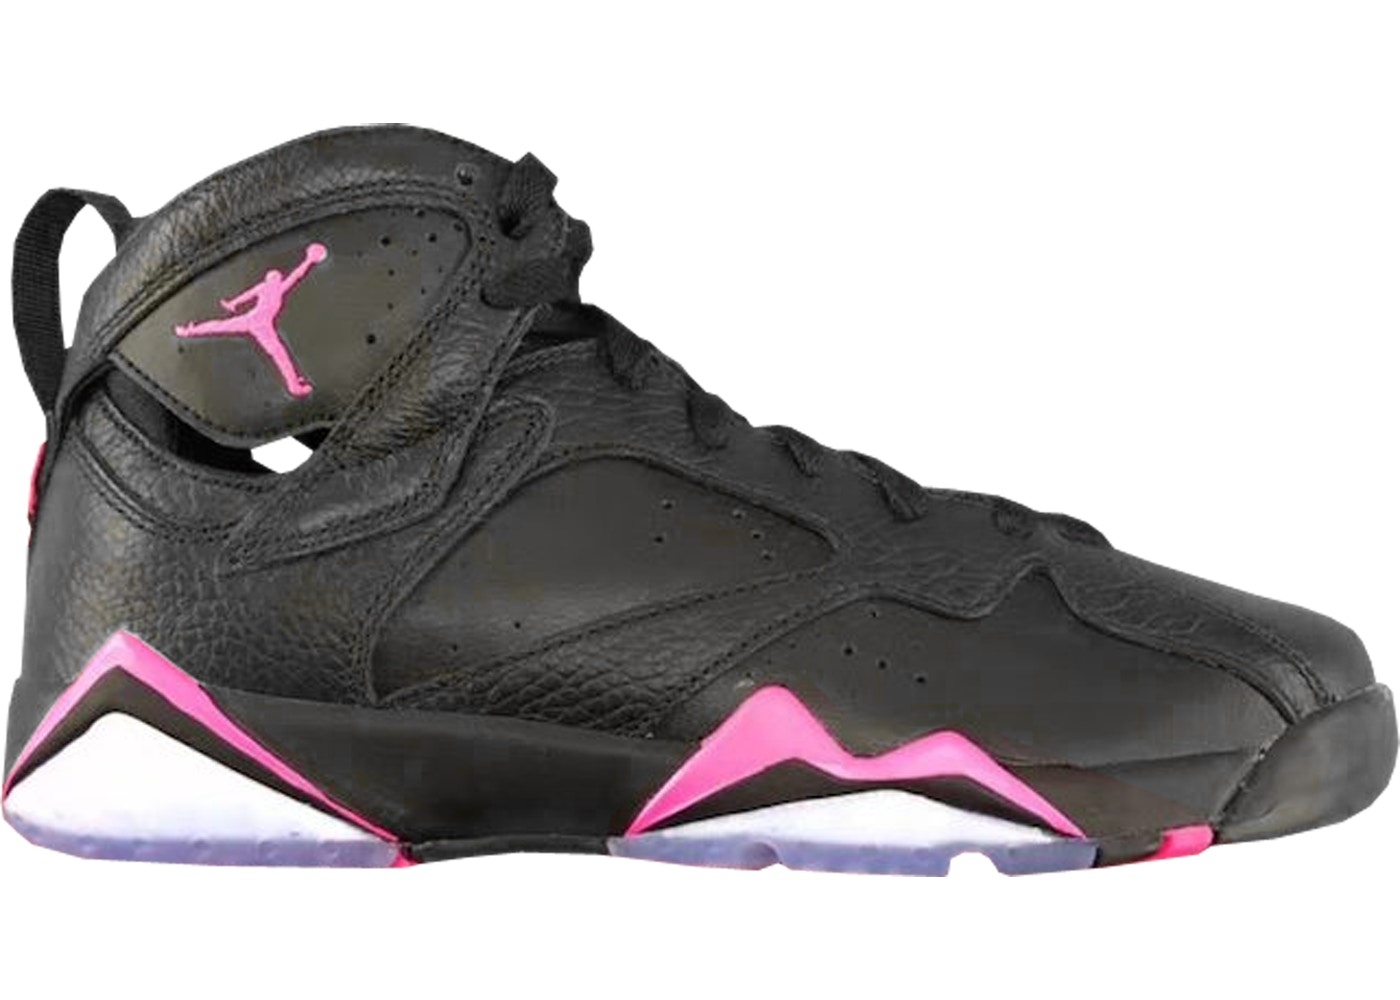 official photos bb839 af4ed Jordan 7 Retro Black Hyper Pink (GS)